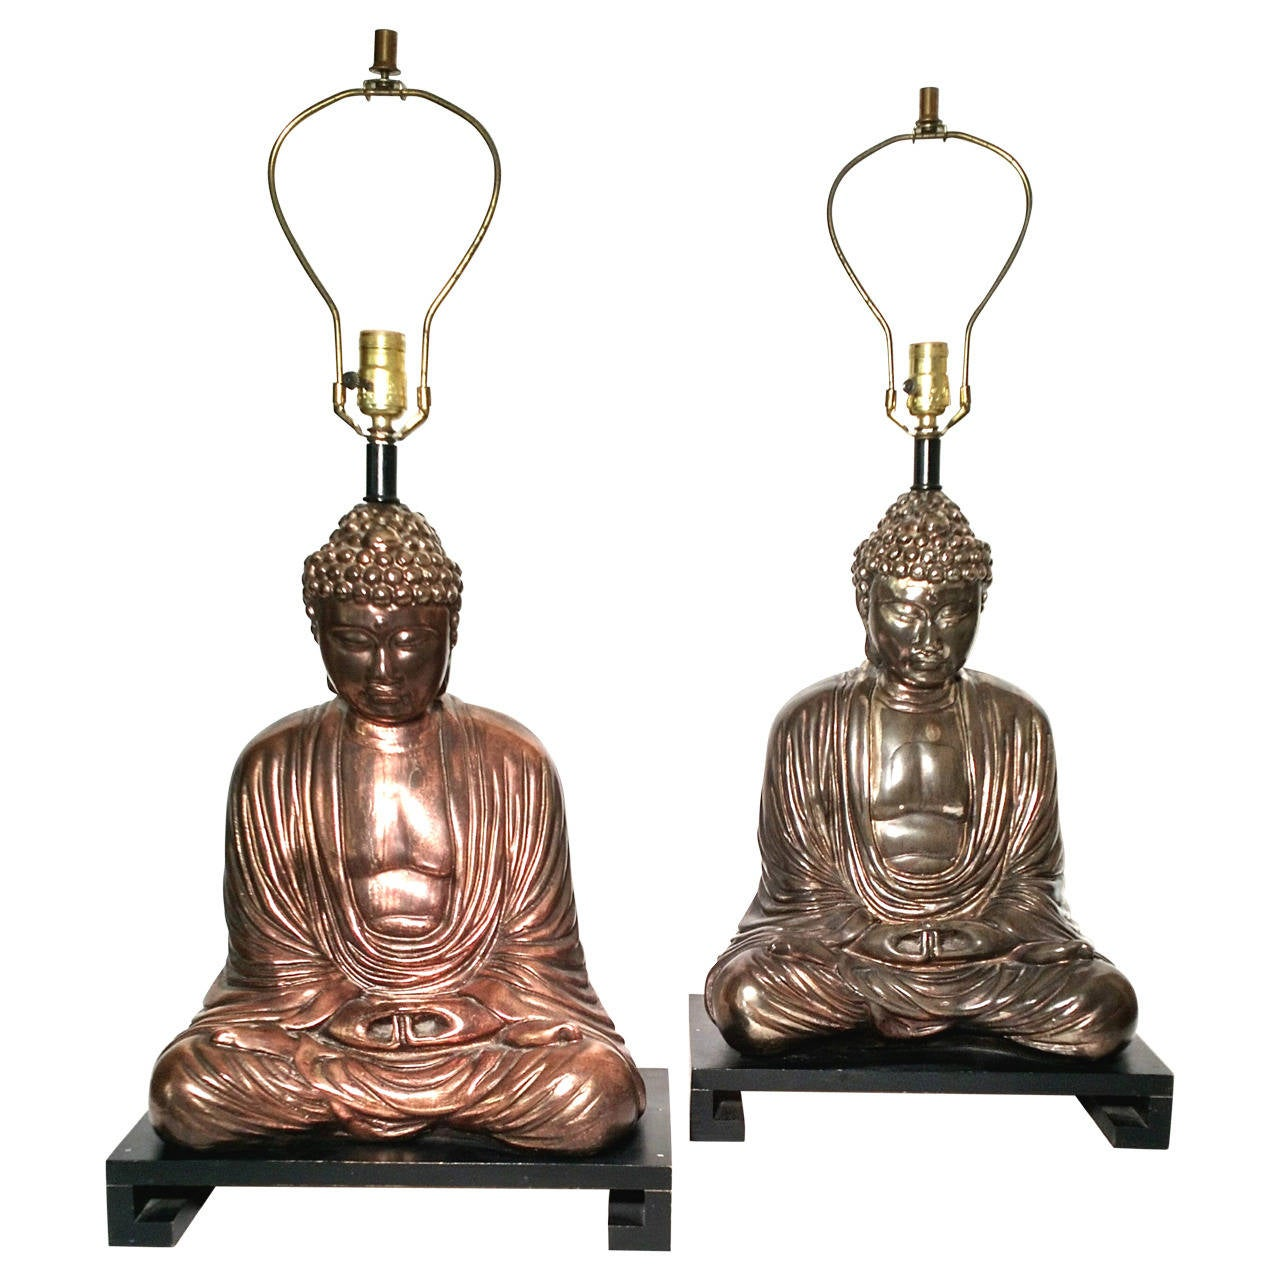 Lovely Large Mid Century Buddha Sculptue Table Lamps In Style Of James Mont 1